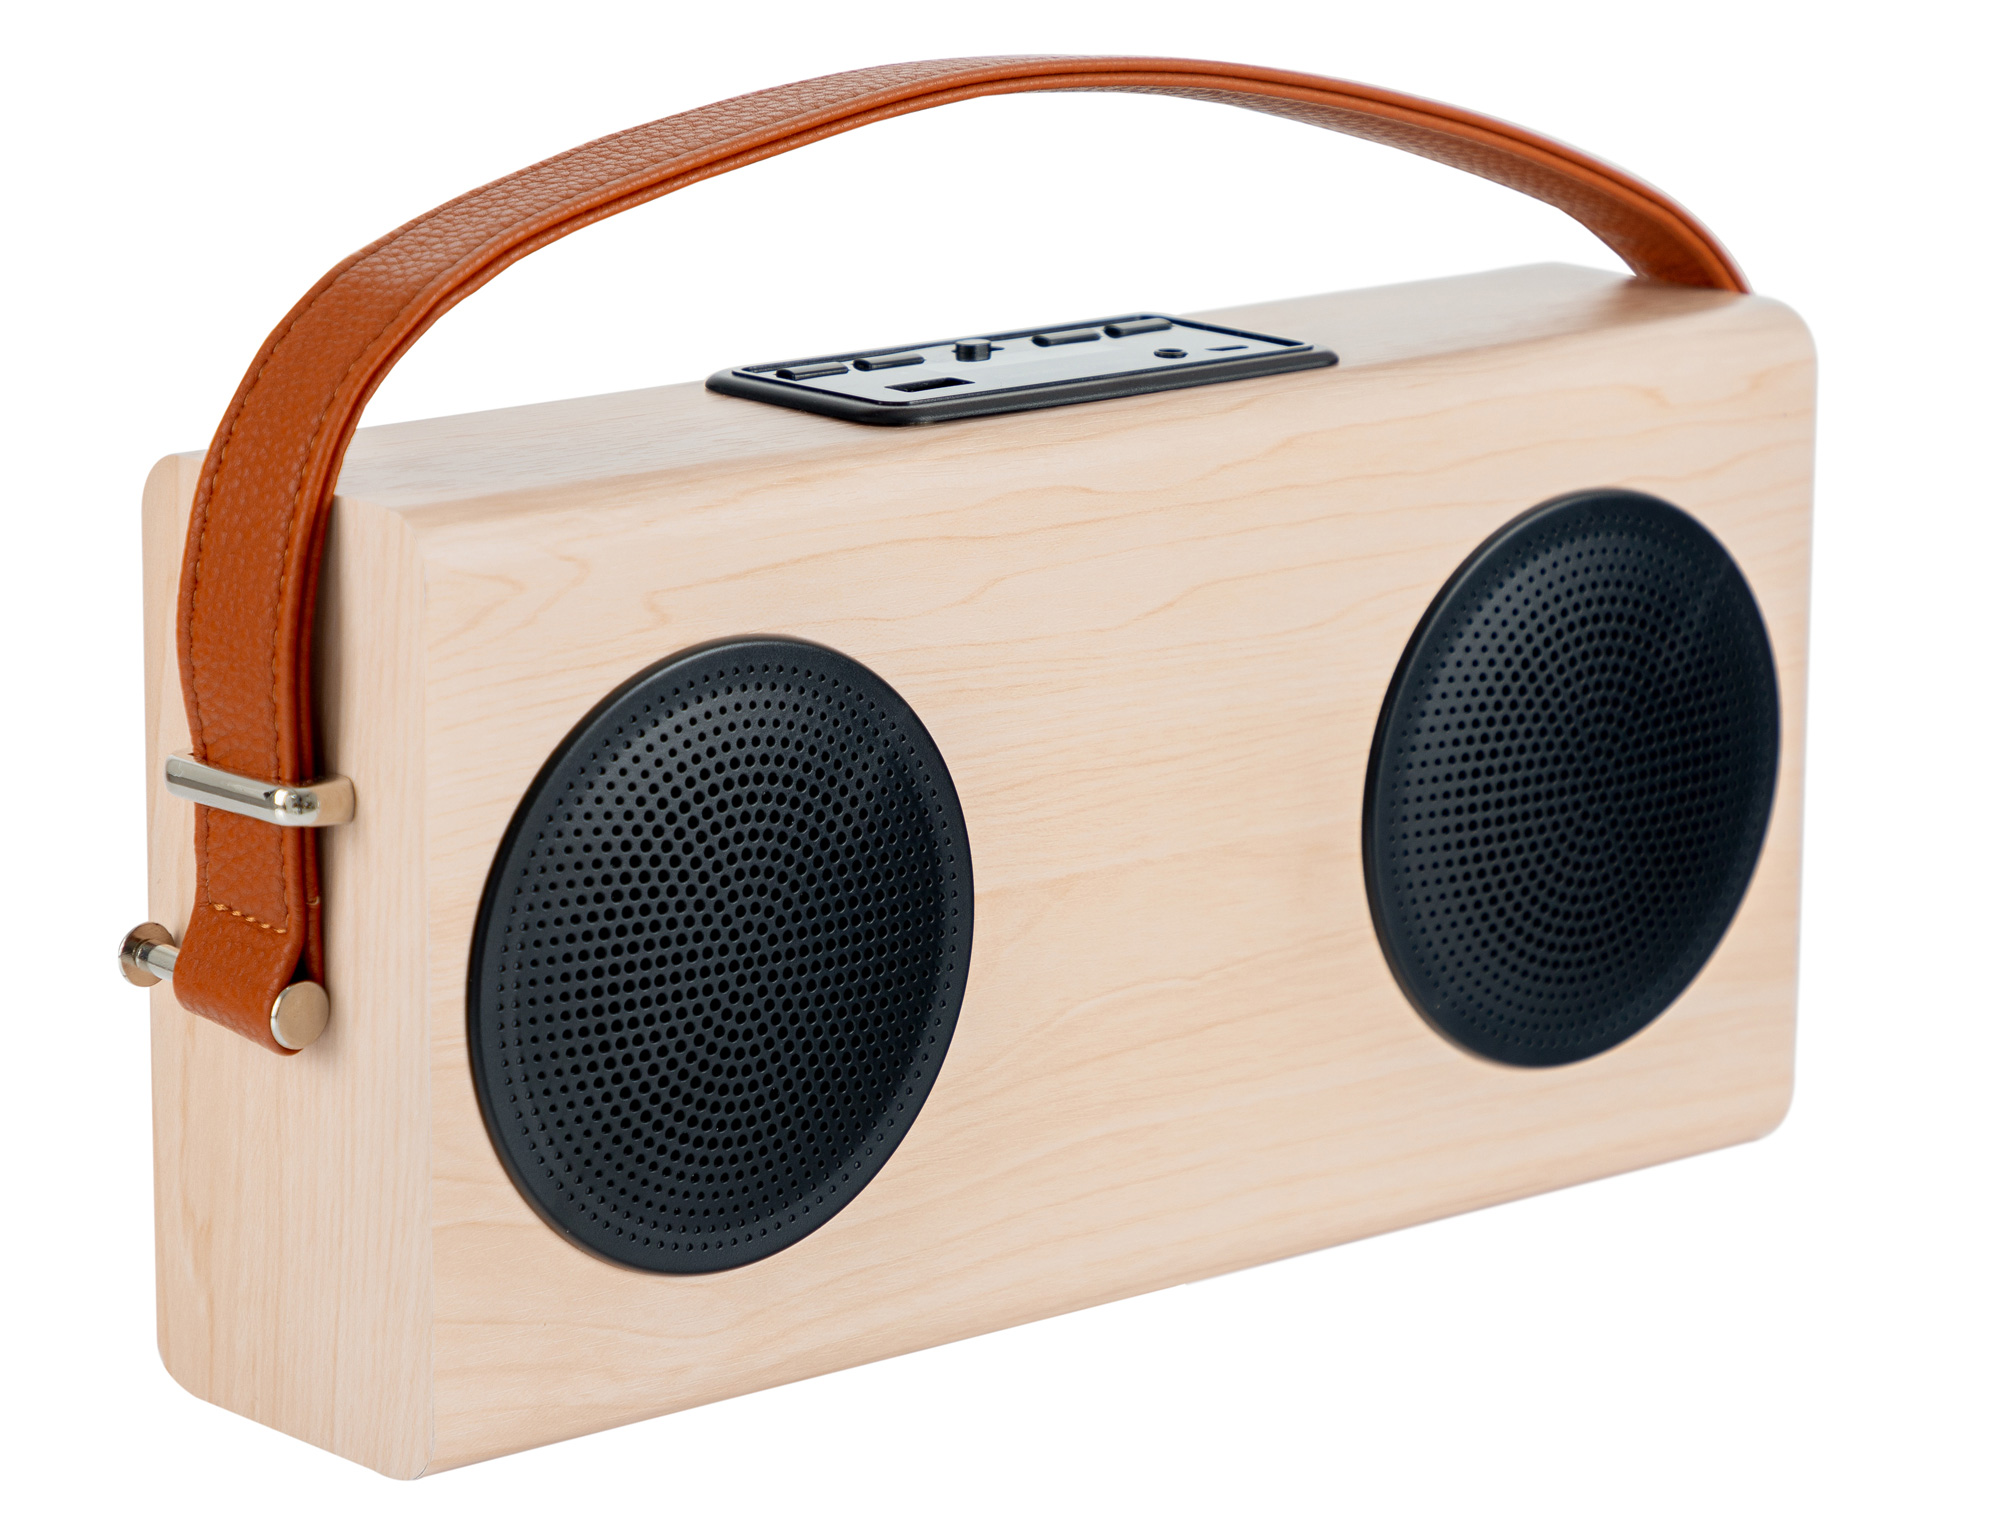 bennett ross stavanger bluetooth boombox lautsprecher. Black Bedroom Furniture Sets. Home Design Ideas